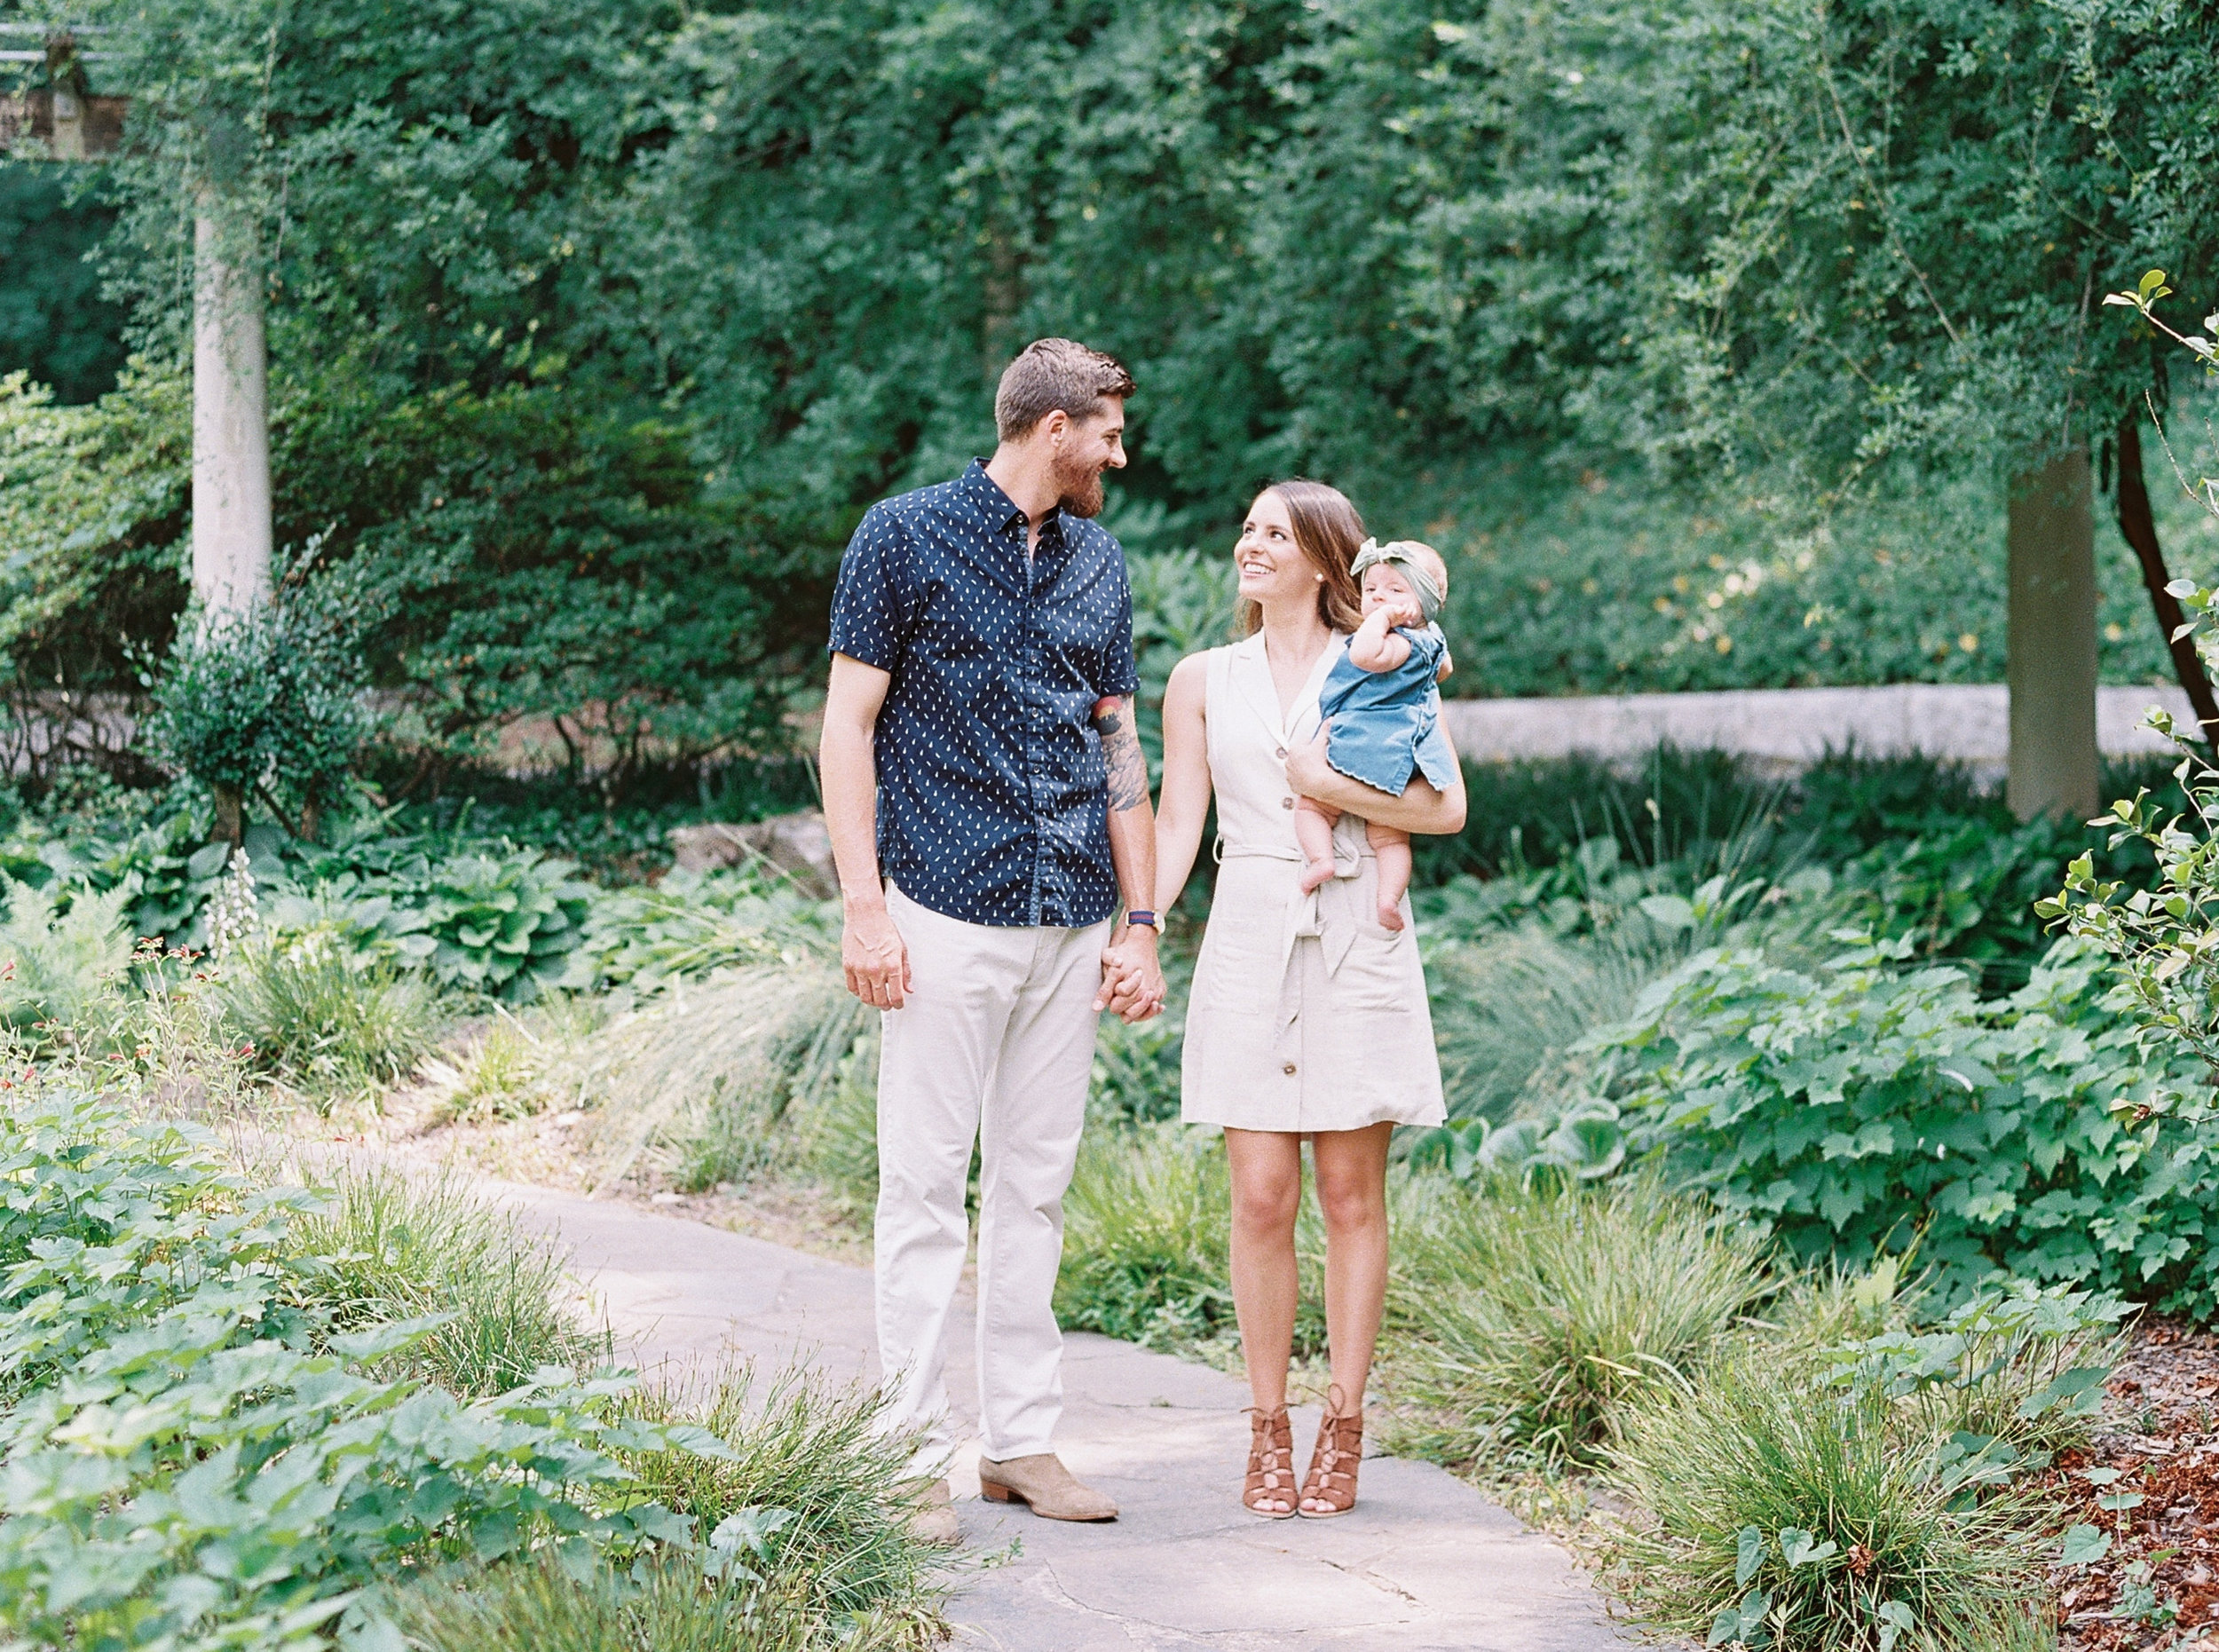 Cator-woolford-gardens-family-photos-atlanta-film-wedding-photographer-8.jpg